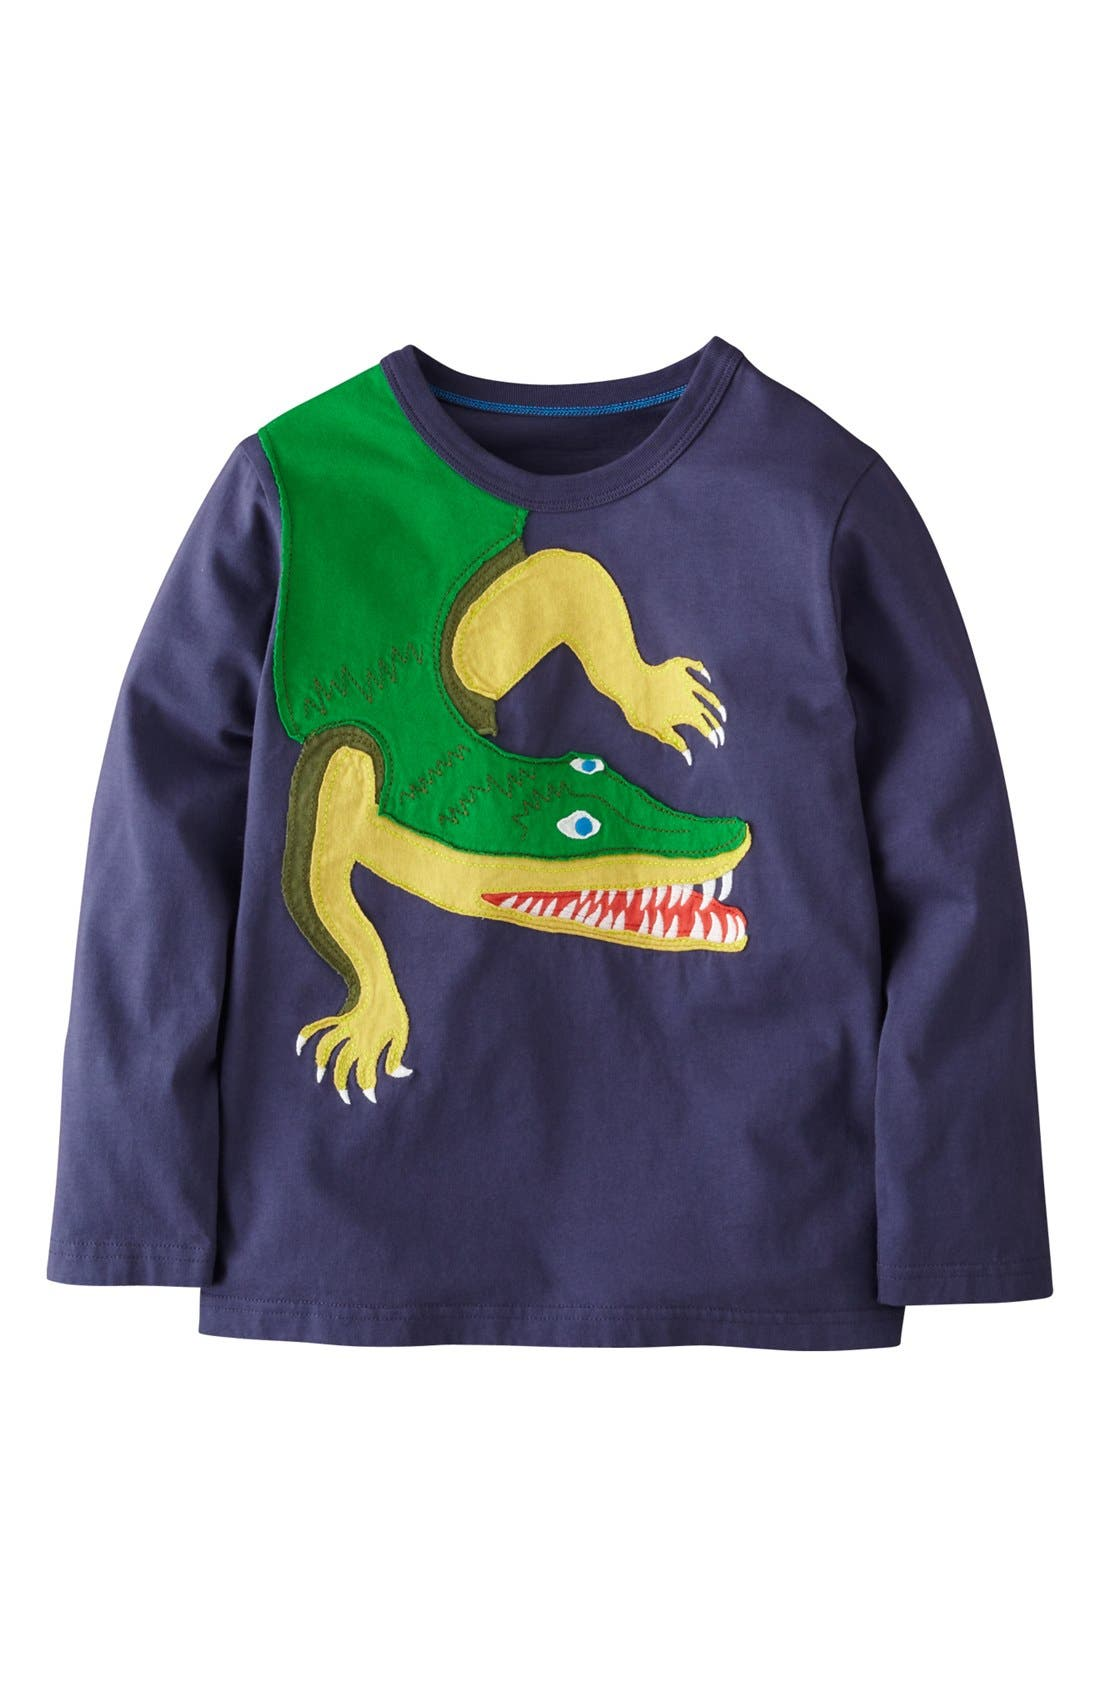 Alternate Image 1 Selected - Mini Boden 'Big Creature' Appliqué T-Shirt (Toddler Boys, Little Boys & Big Boys)